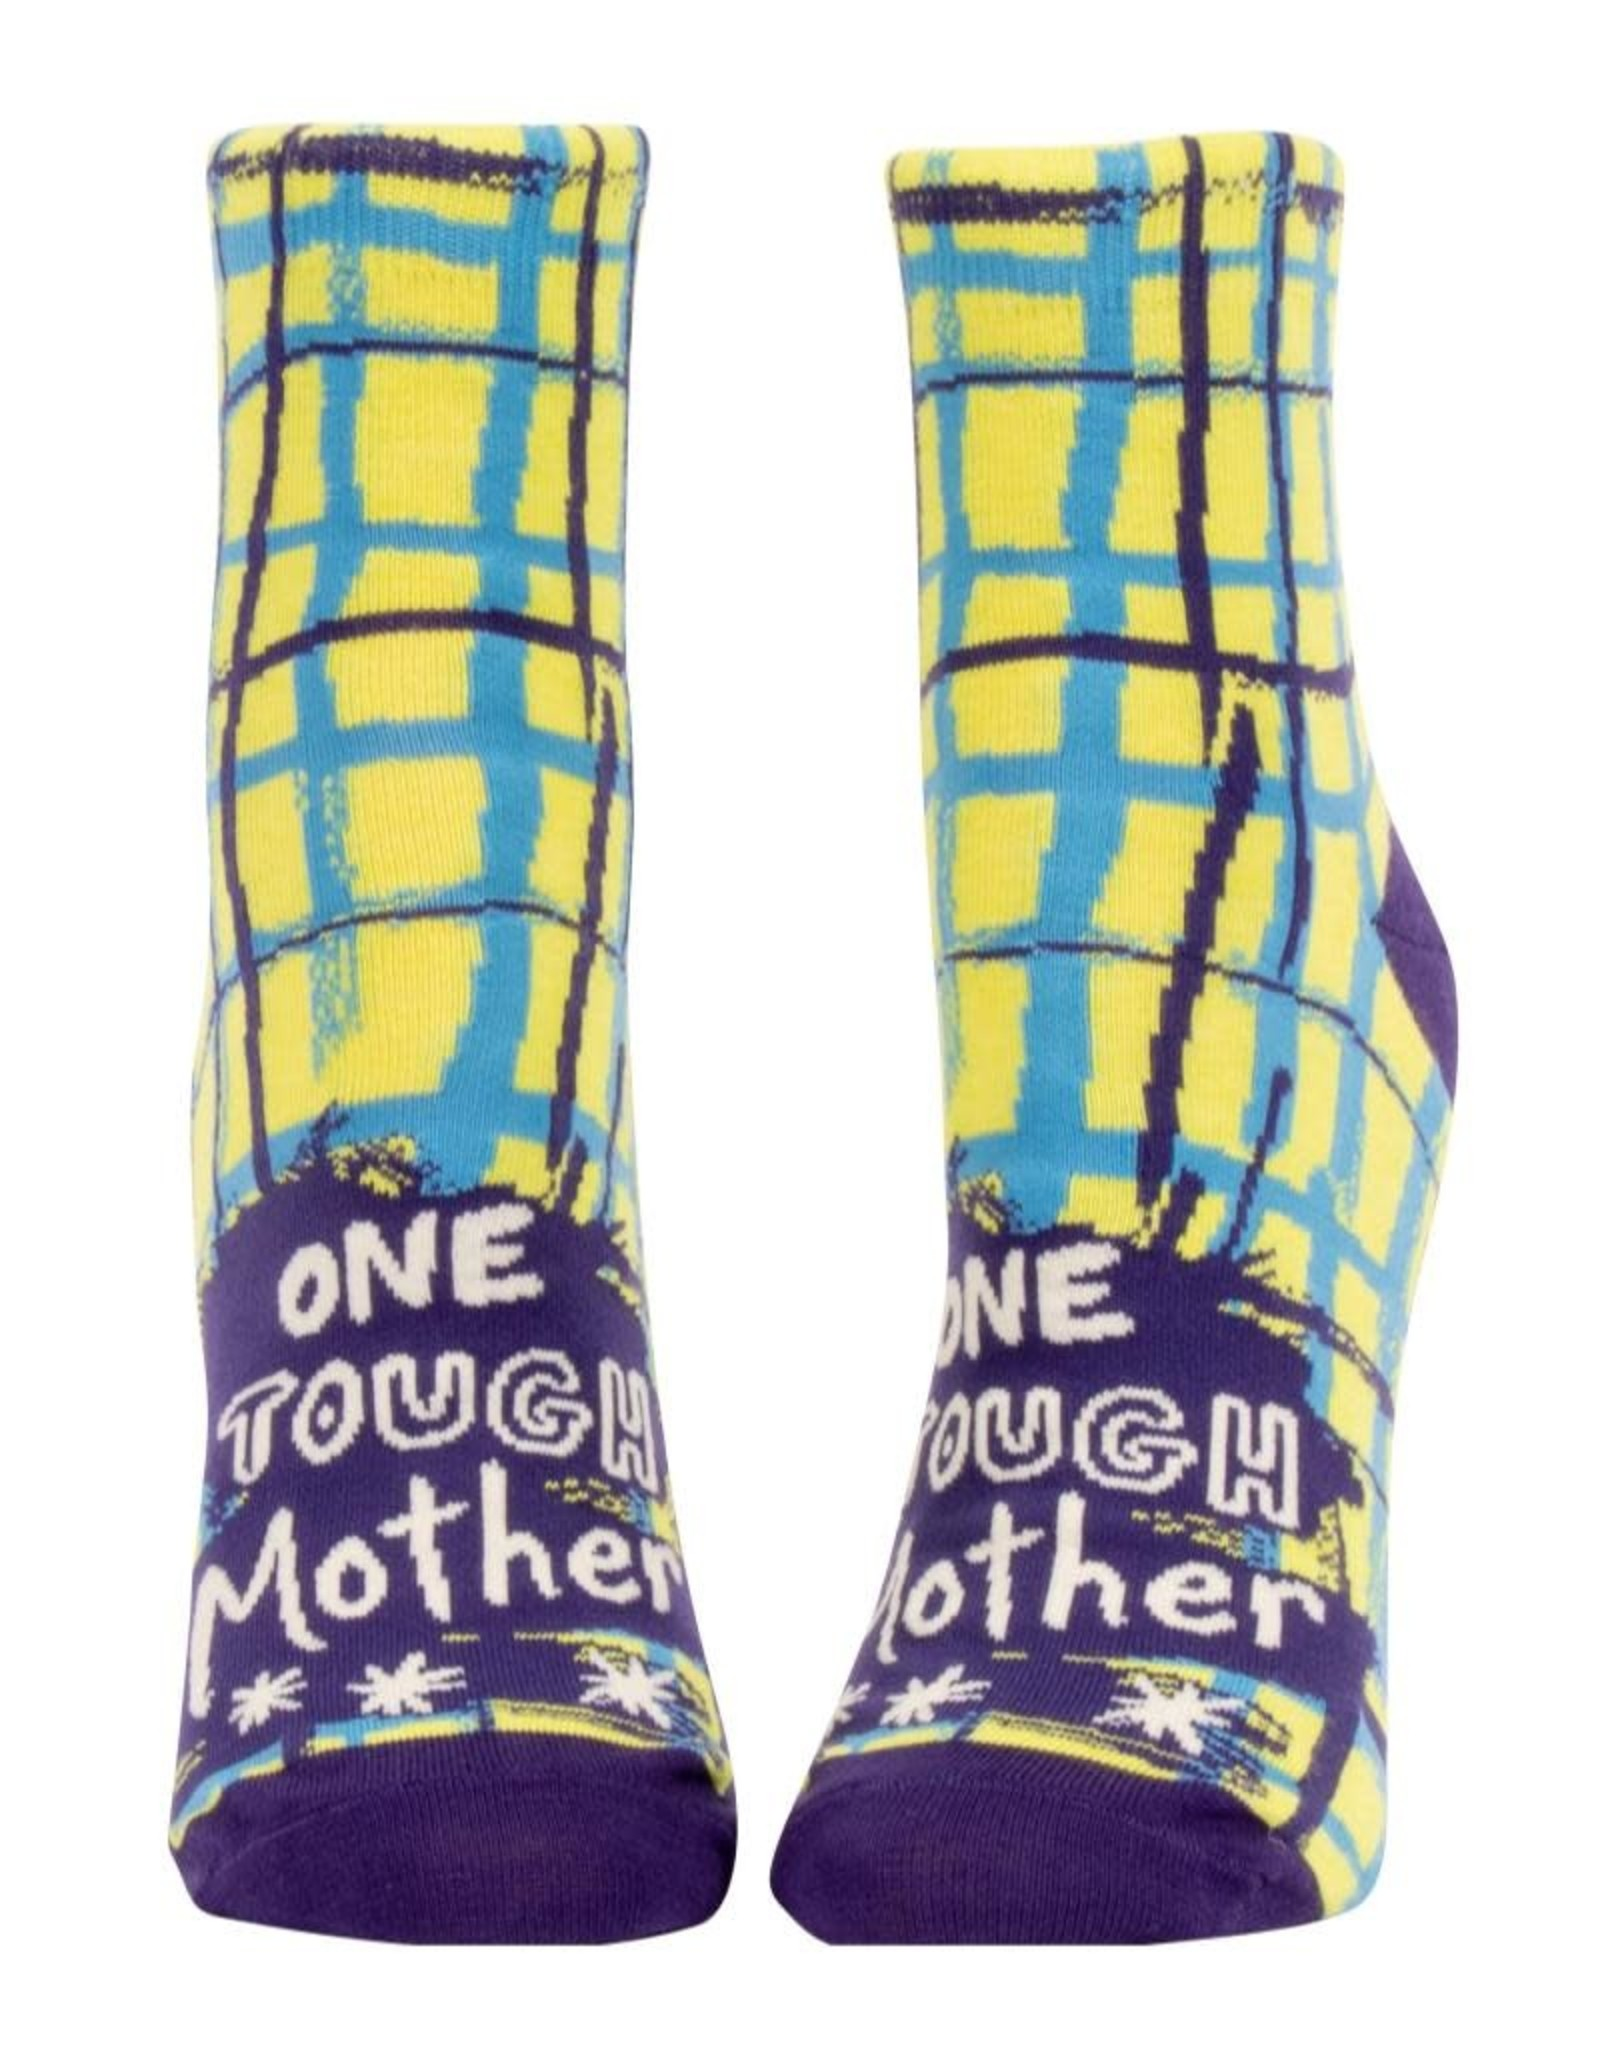 Blue Q One Tough Mother Women's Ankle Socks